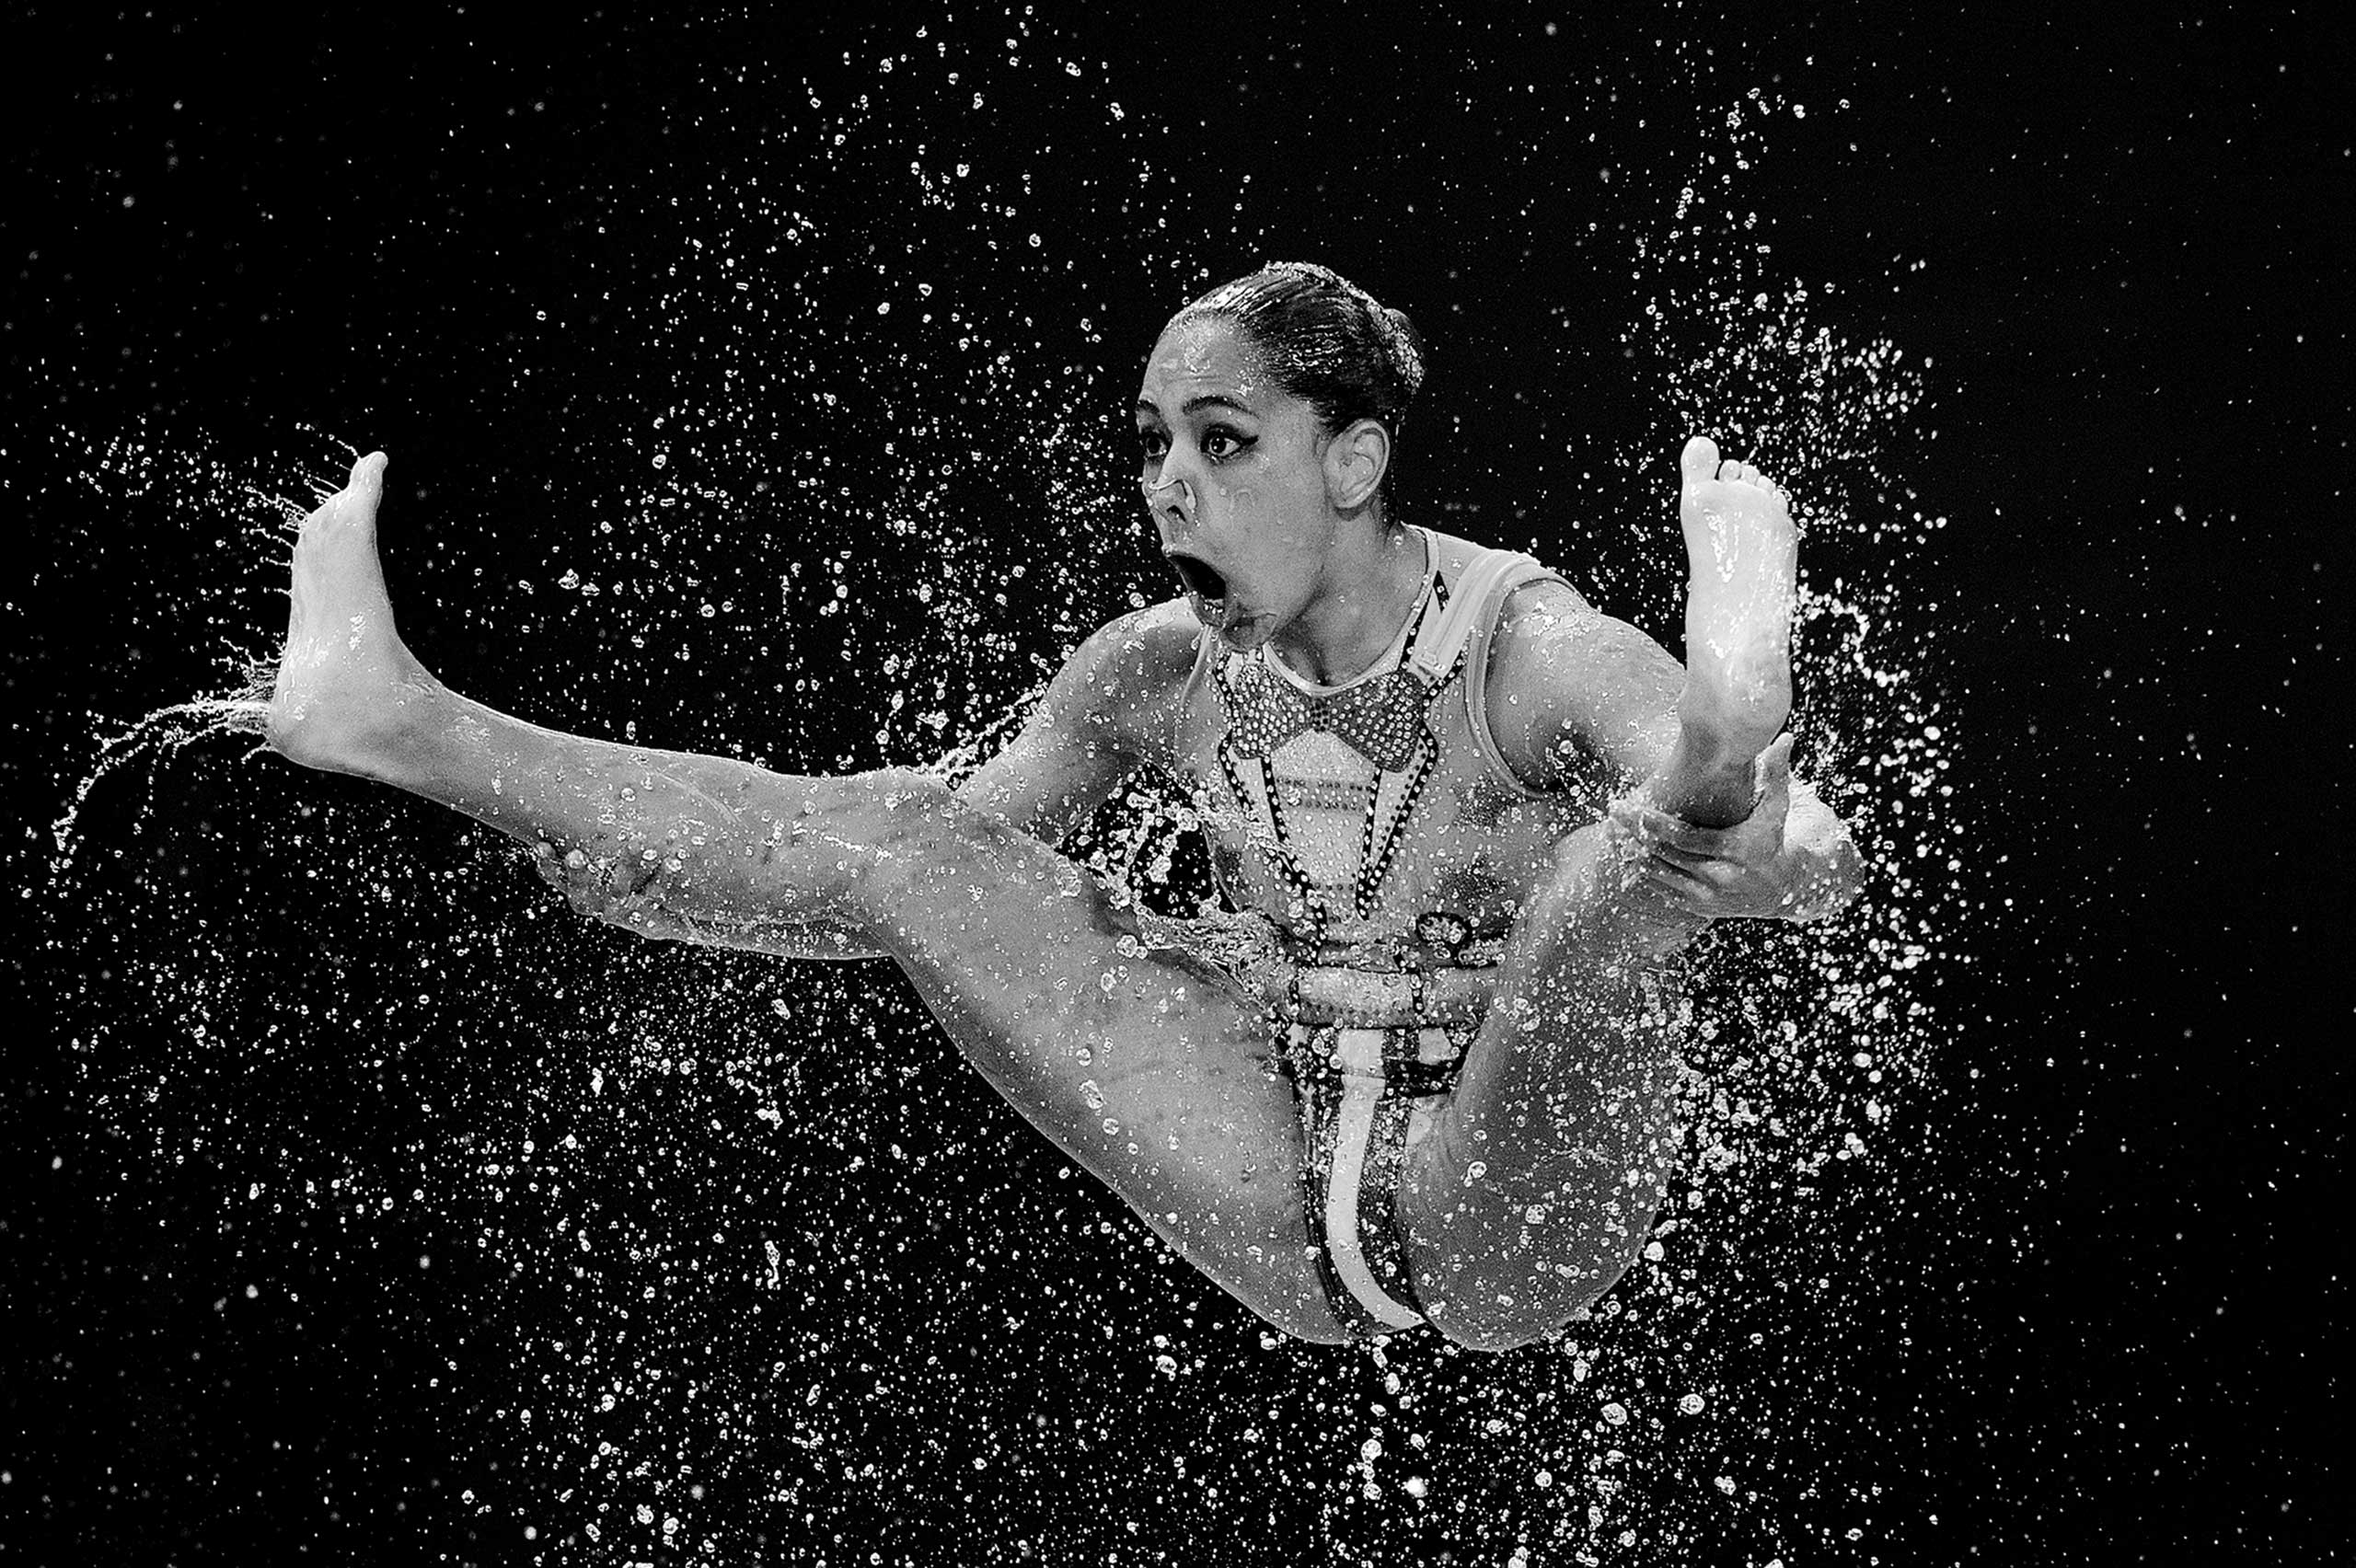 Teams compete in the Women's Team Free Synchronised Swimming Preliminary on day four of the 16th FINA World Championships at the Kazan Arena on July 28, 2015 in Kazan, Russia.